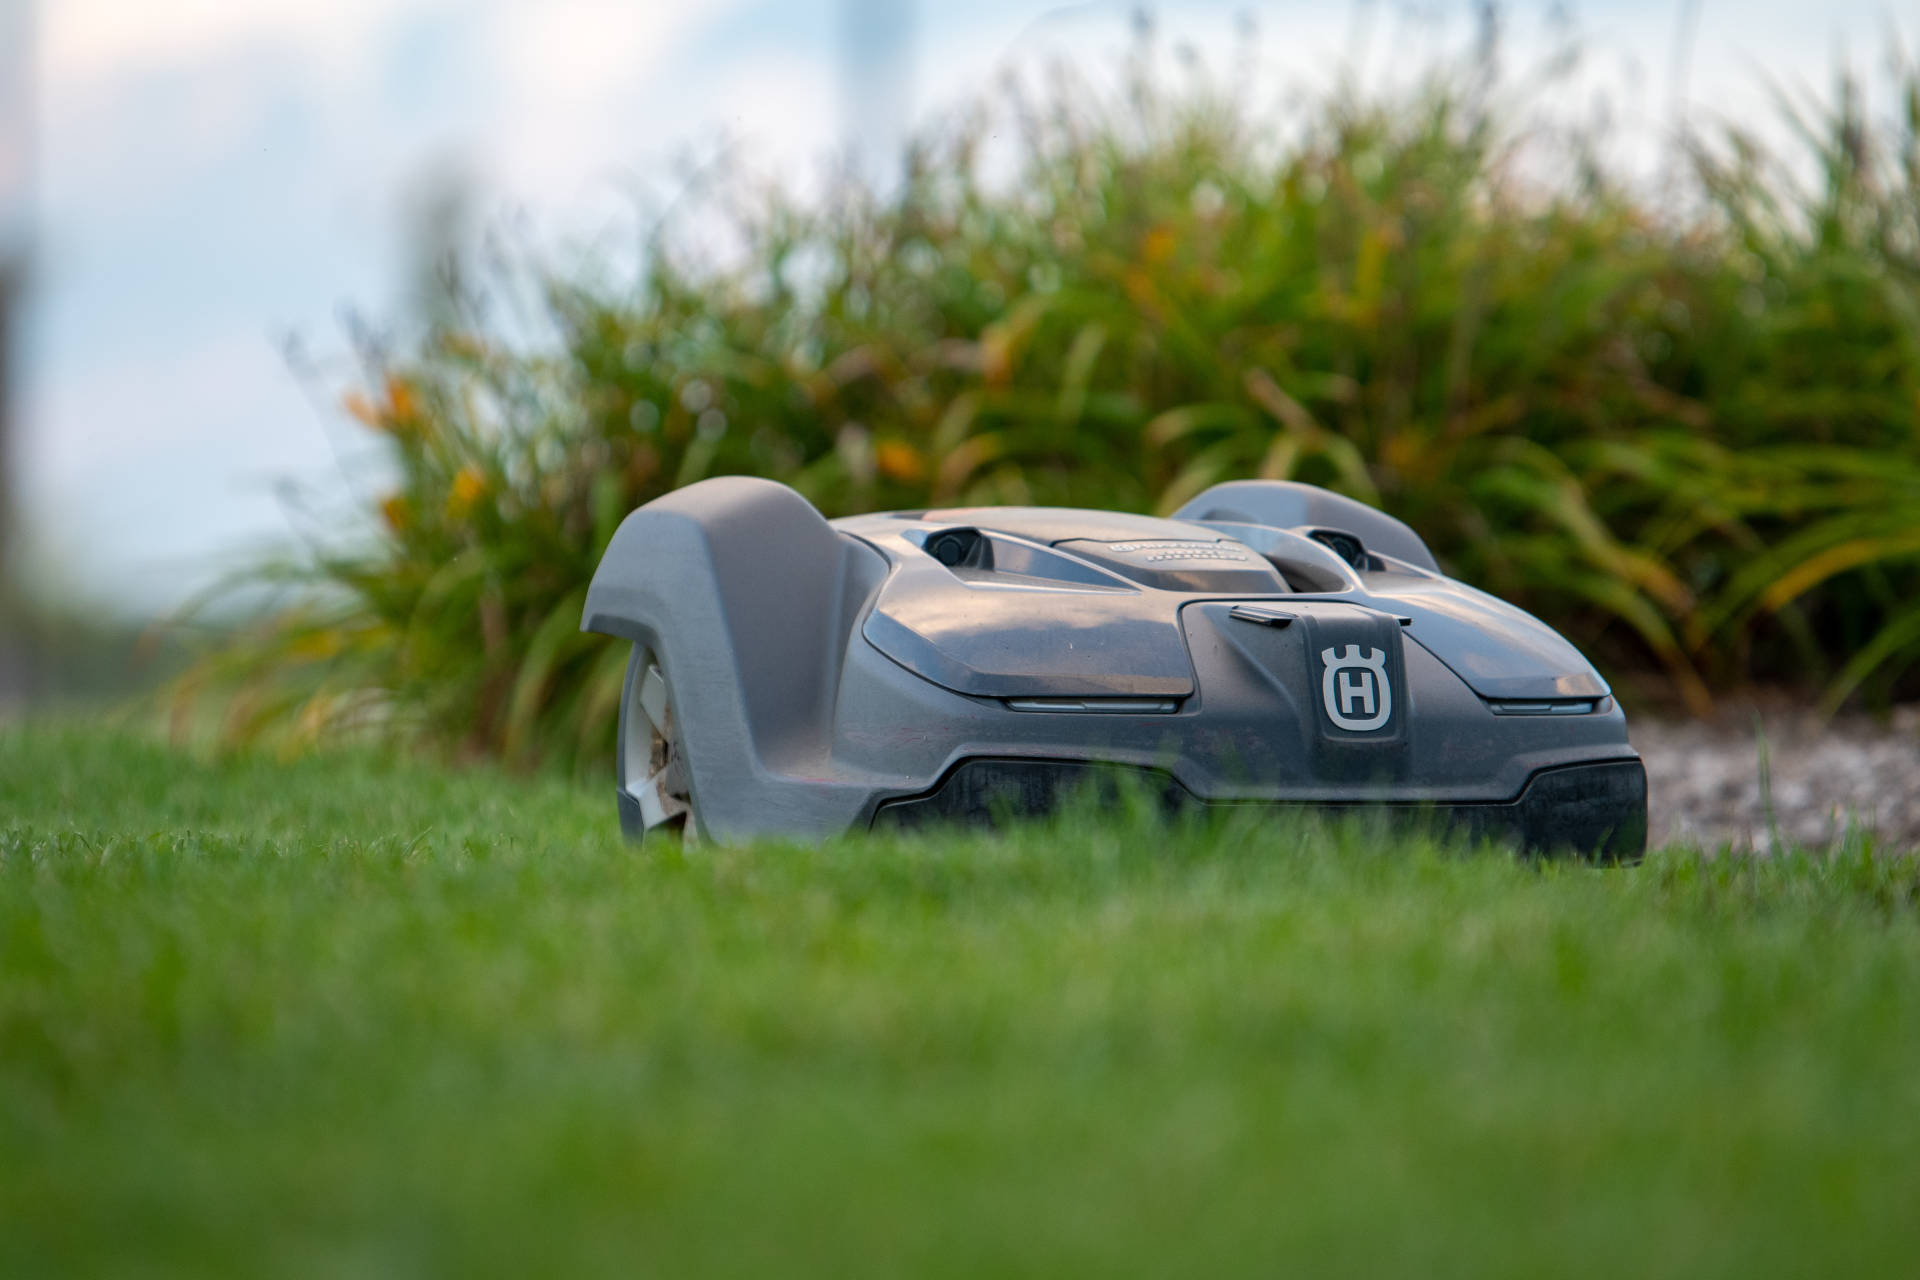 The Future of Lawn Mowing